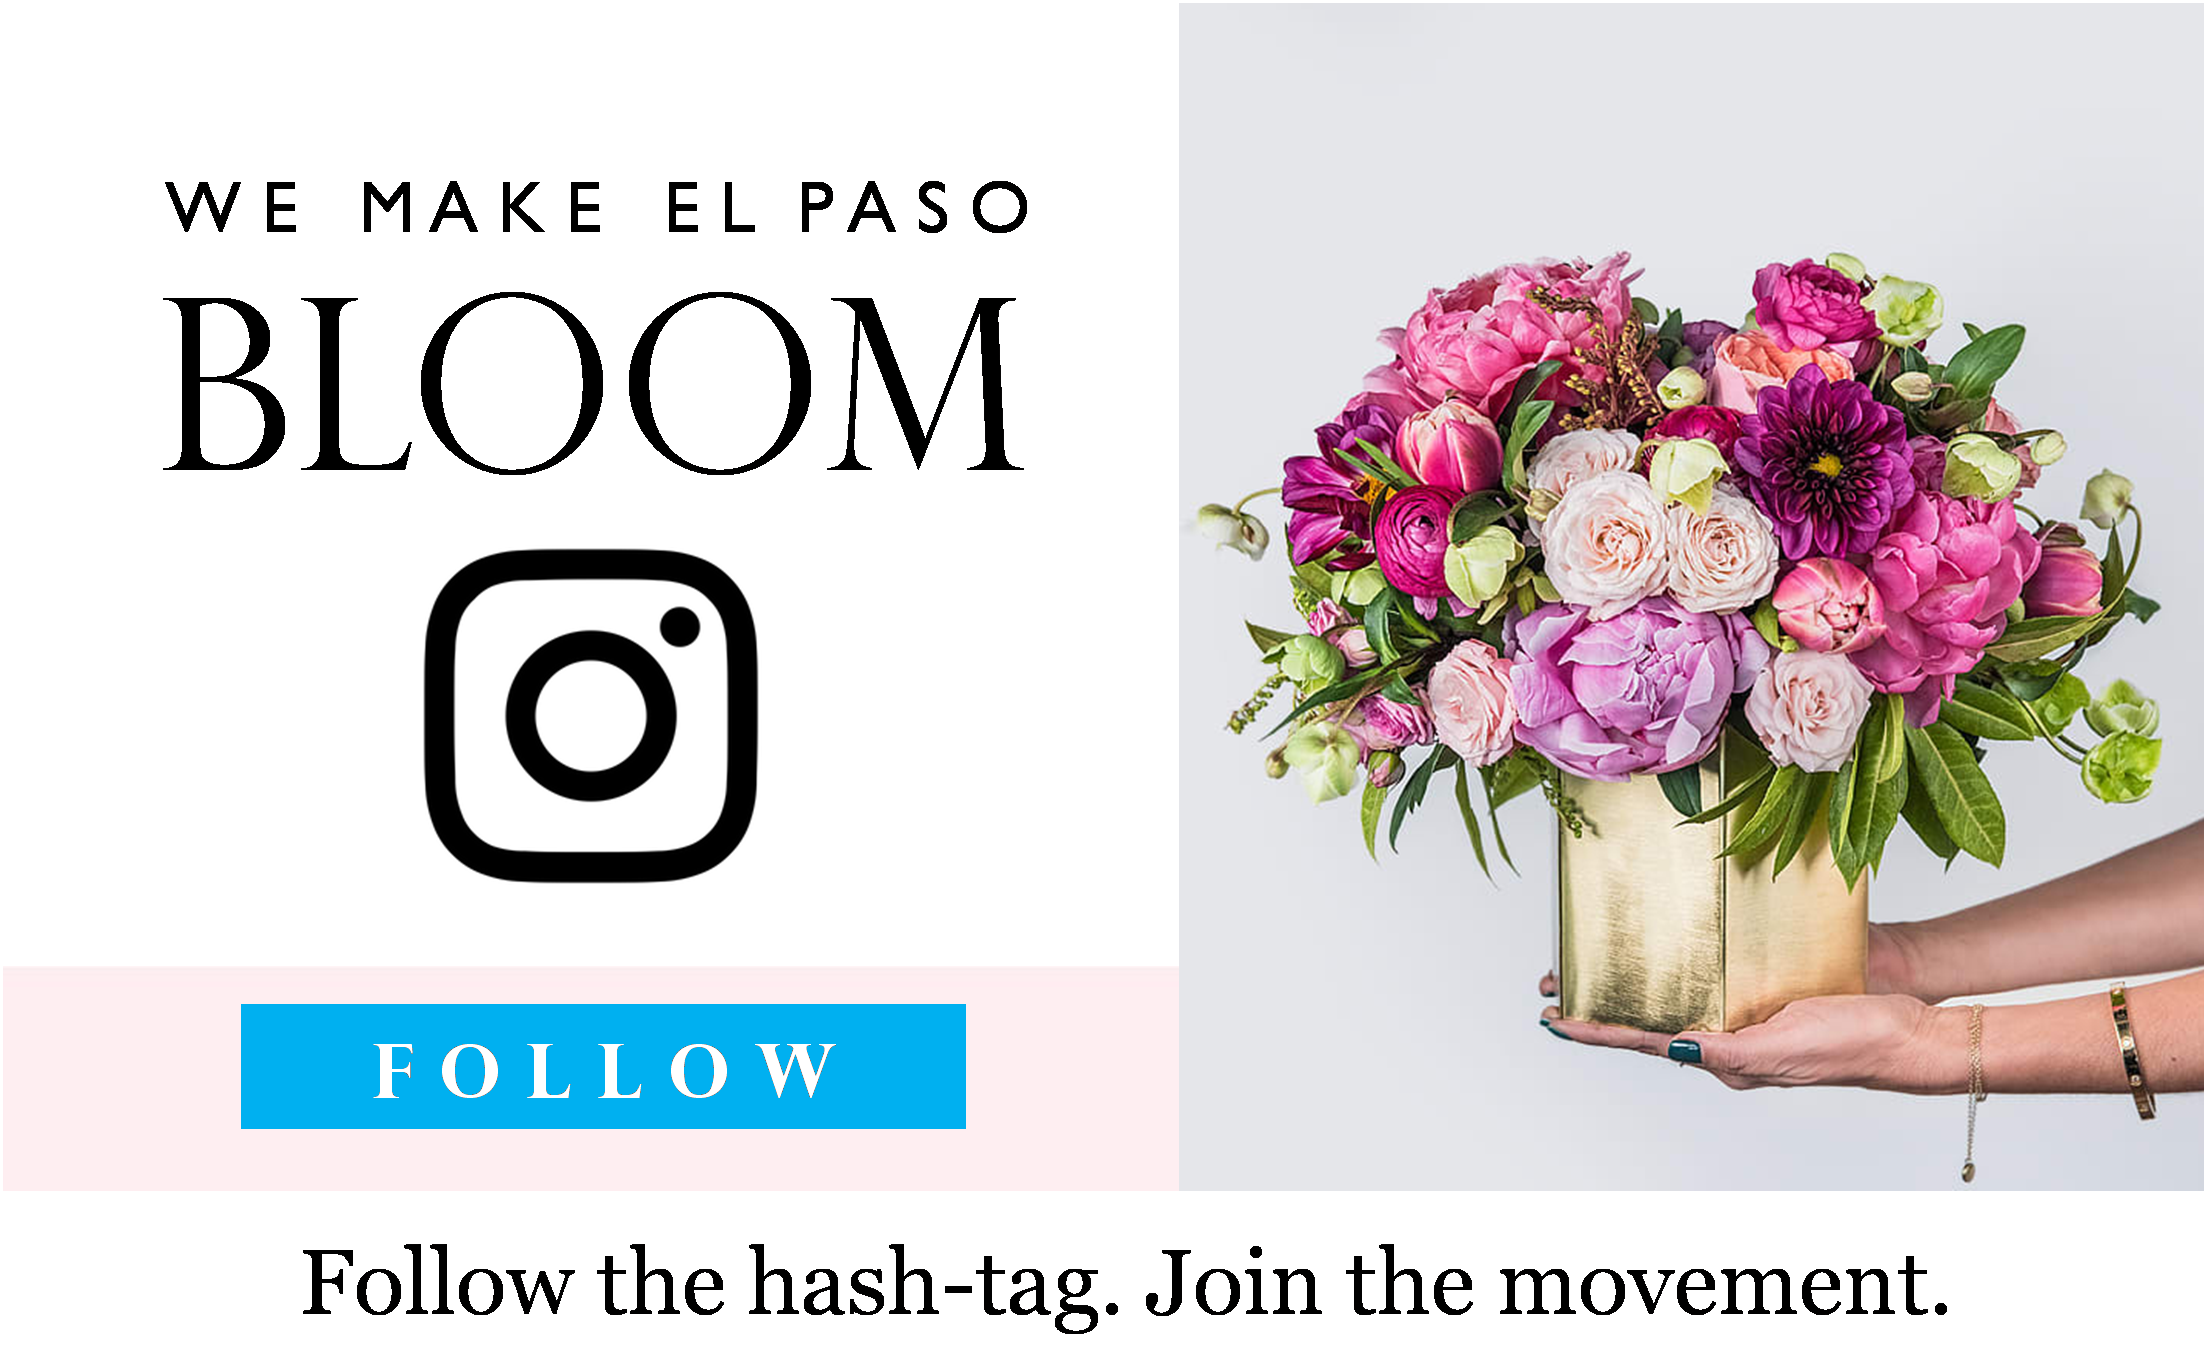 we-make-el-paso-bloom-with-luxury-gifts-rose-boxes-angies-floral-designs-angies-we-make-el-paso-bloom-floral-instagram-designs-rose-ladders-el-paso-florist-79912-west-angies-flower.png